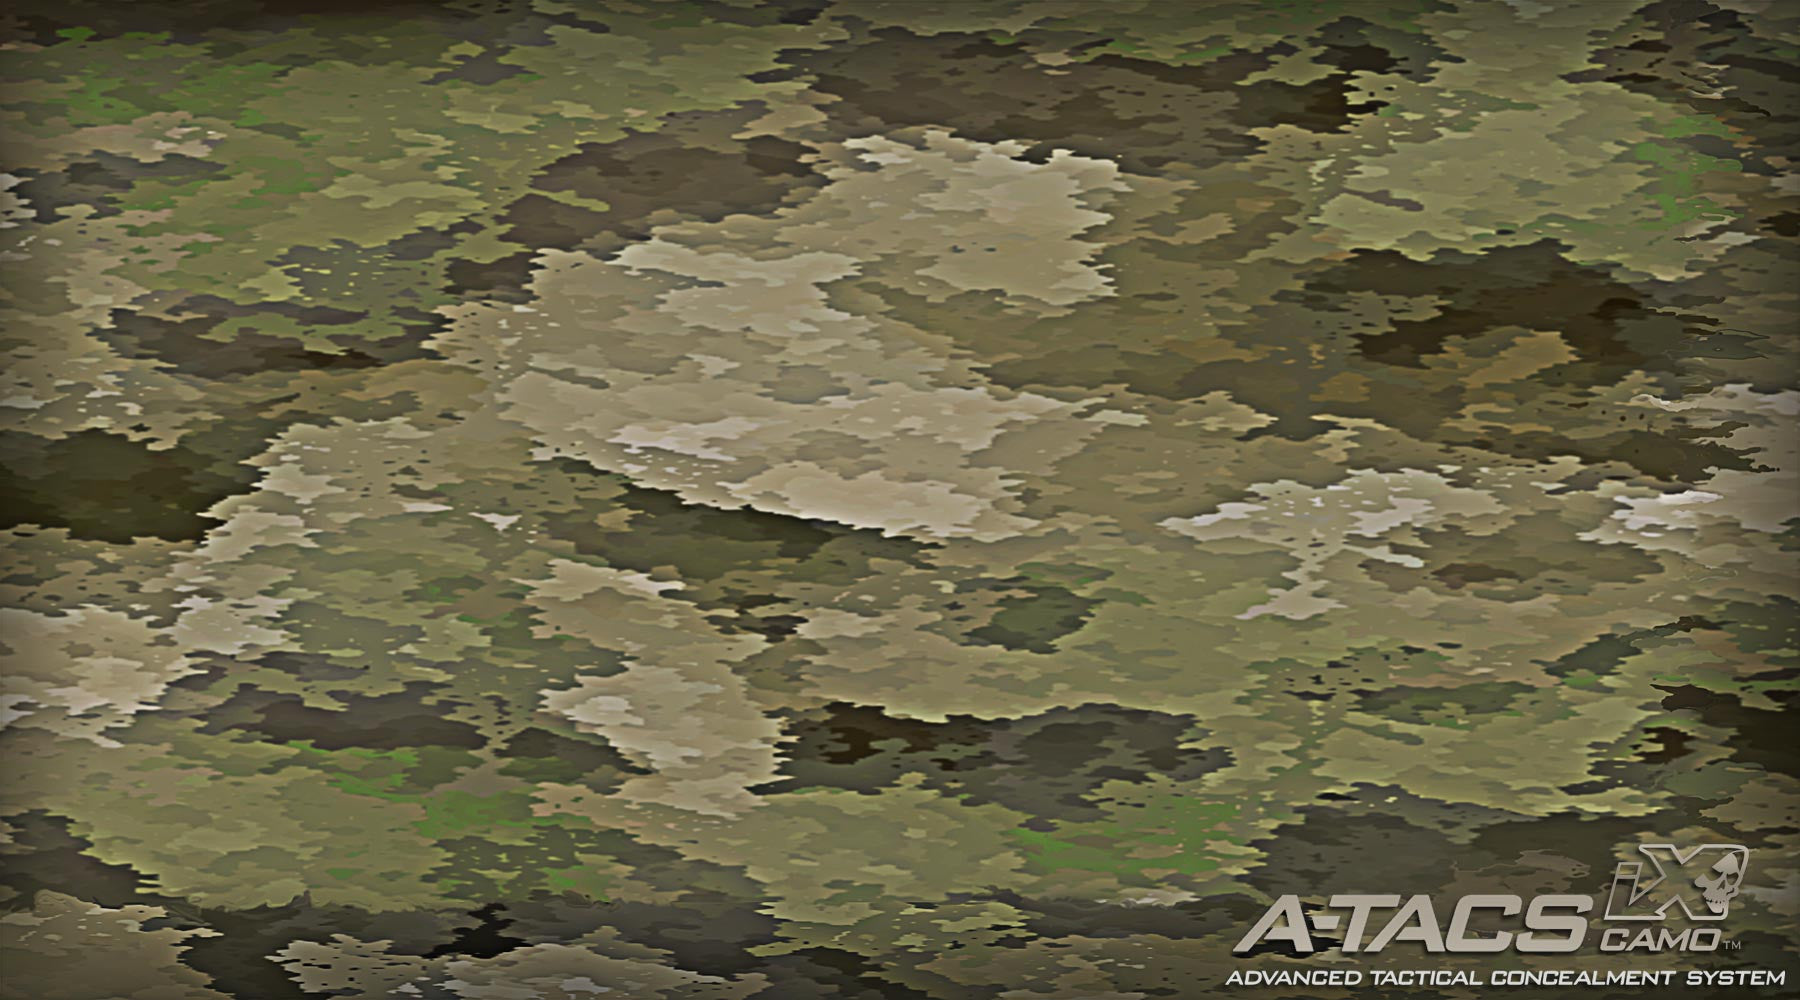 Take Your Concealment to the Extreme with New A-TACS iX Camouflage